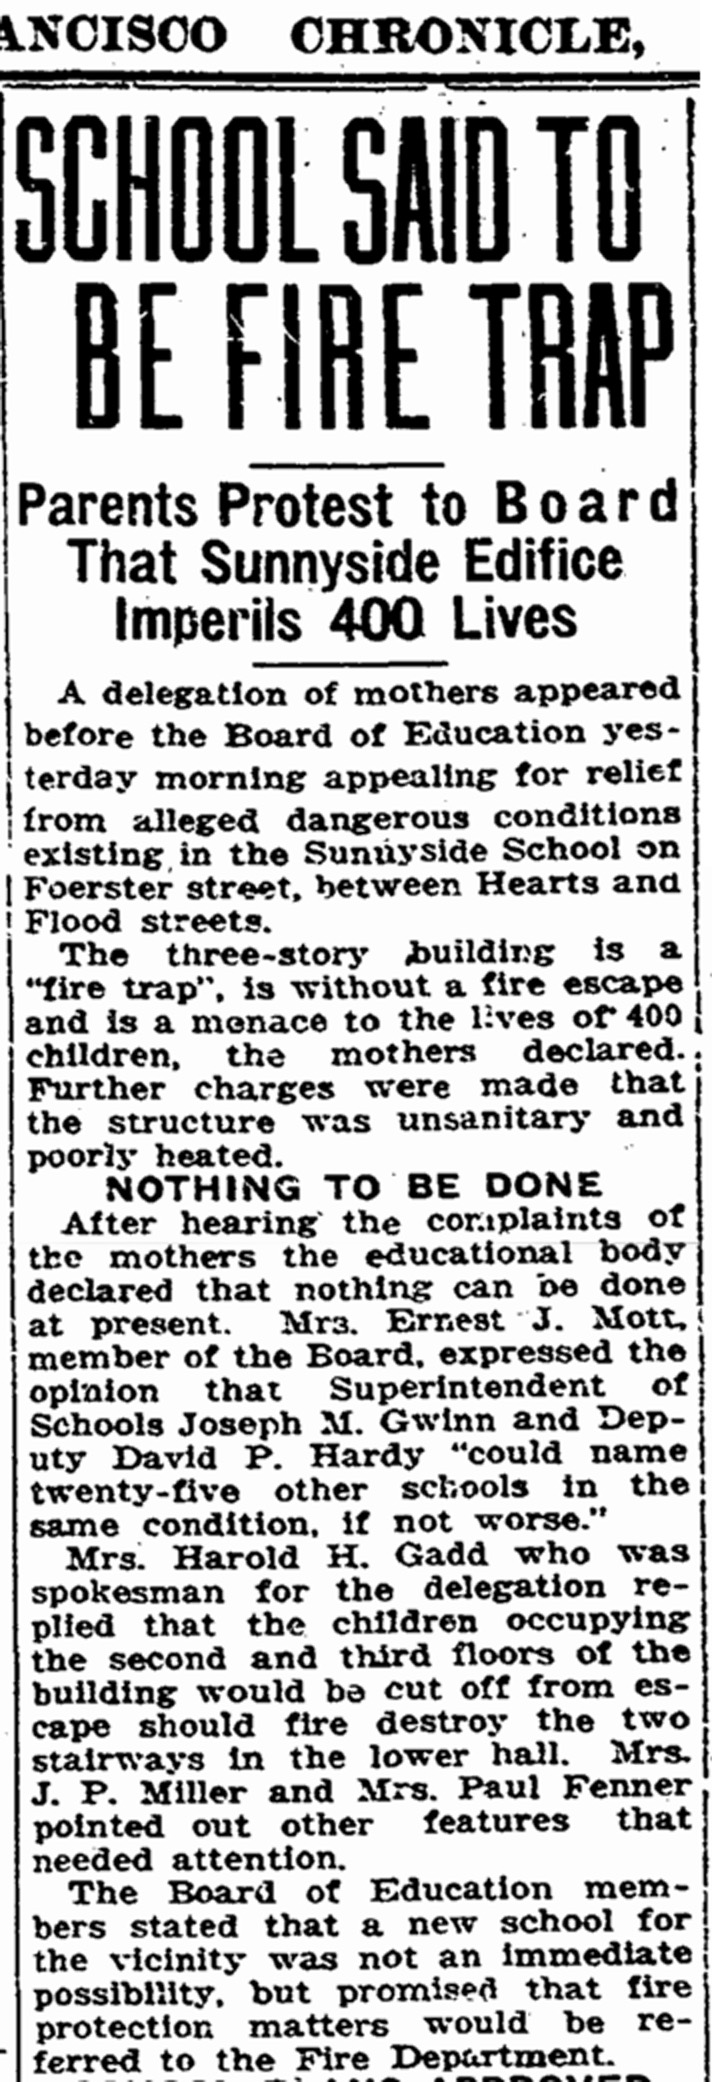 """School Said to be Firetrap,"" SF Chronicle, 23 July 1925, page 3."